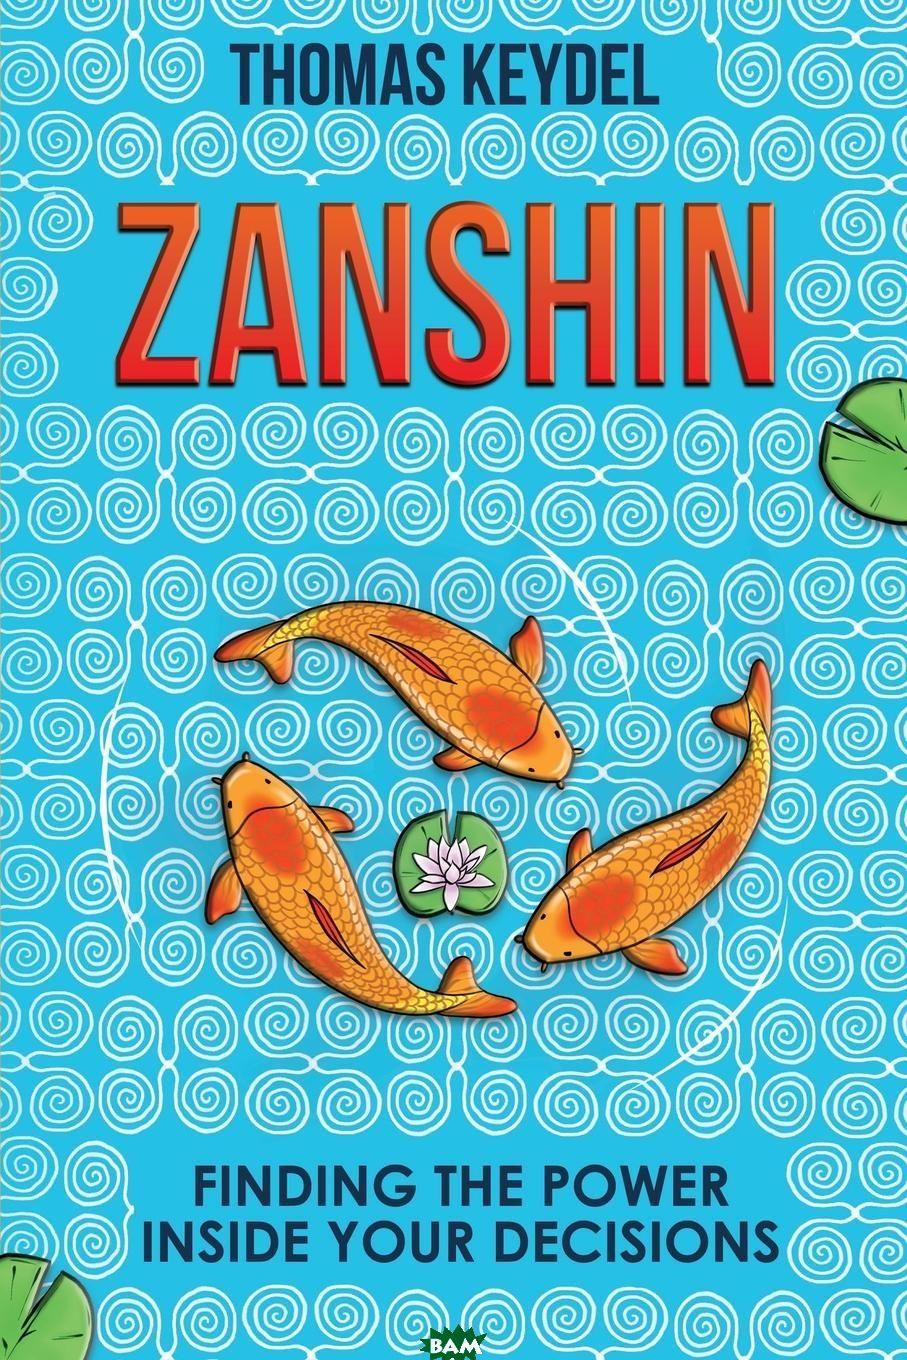 Zanshin. Finding the Power Inside Your Decisions